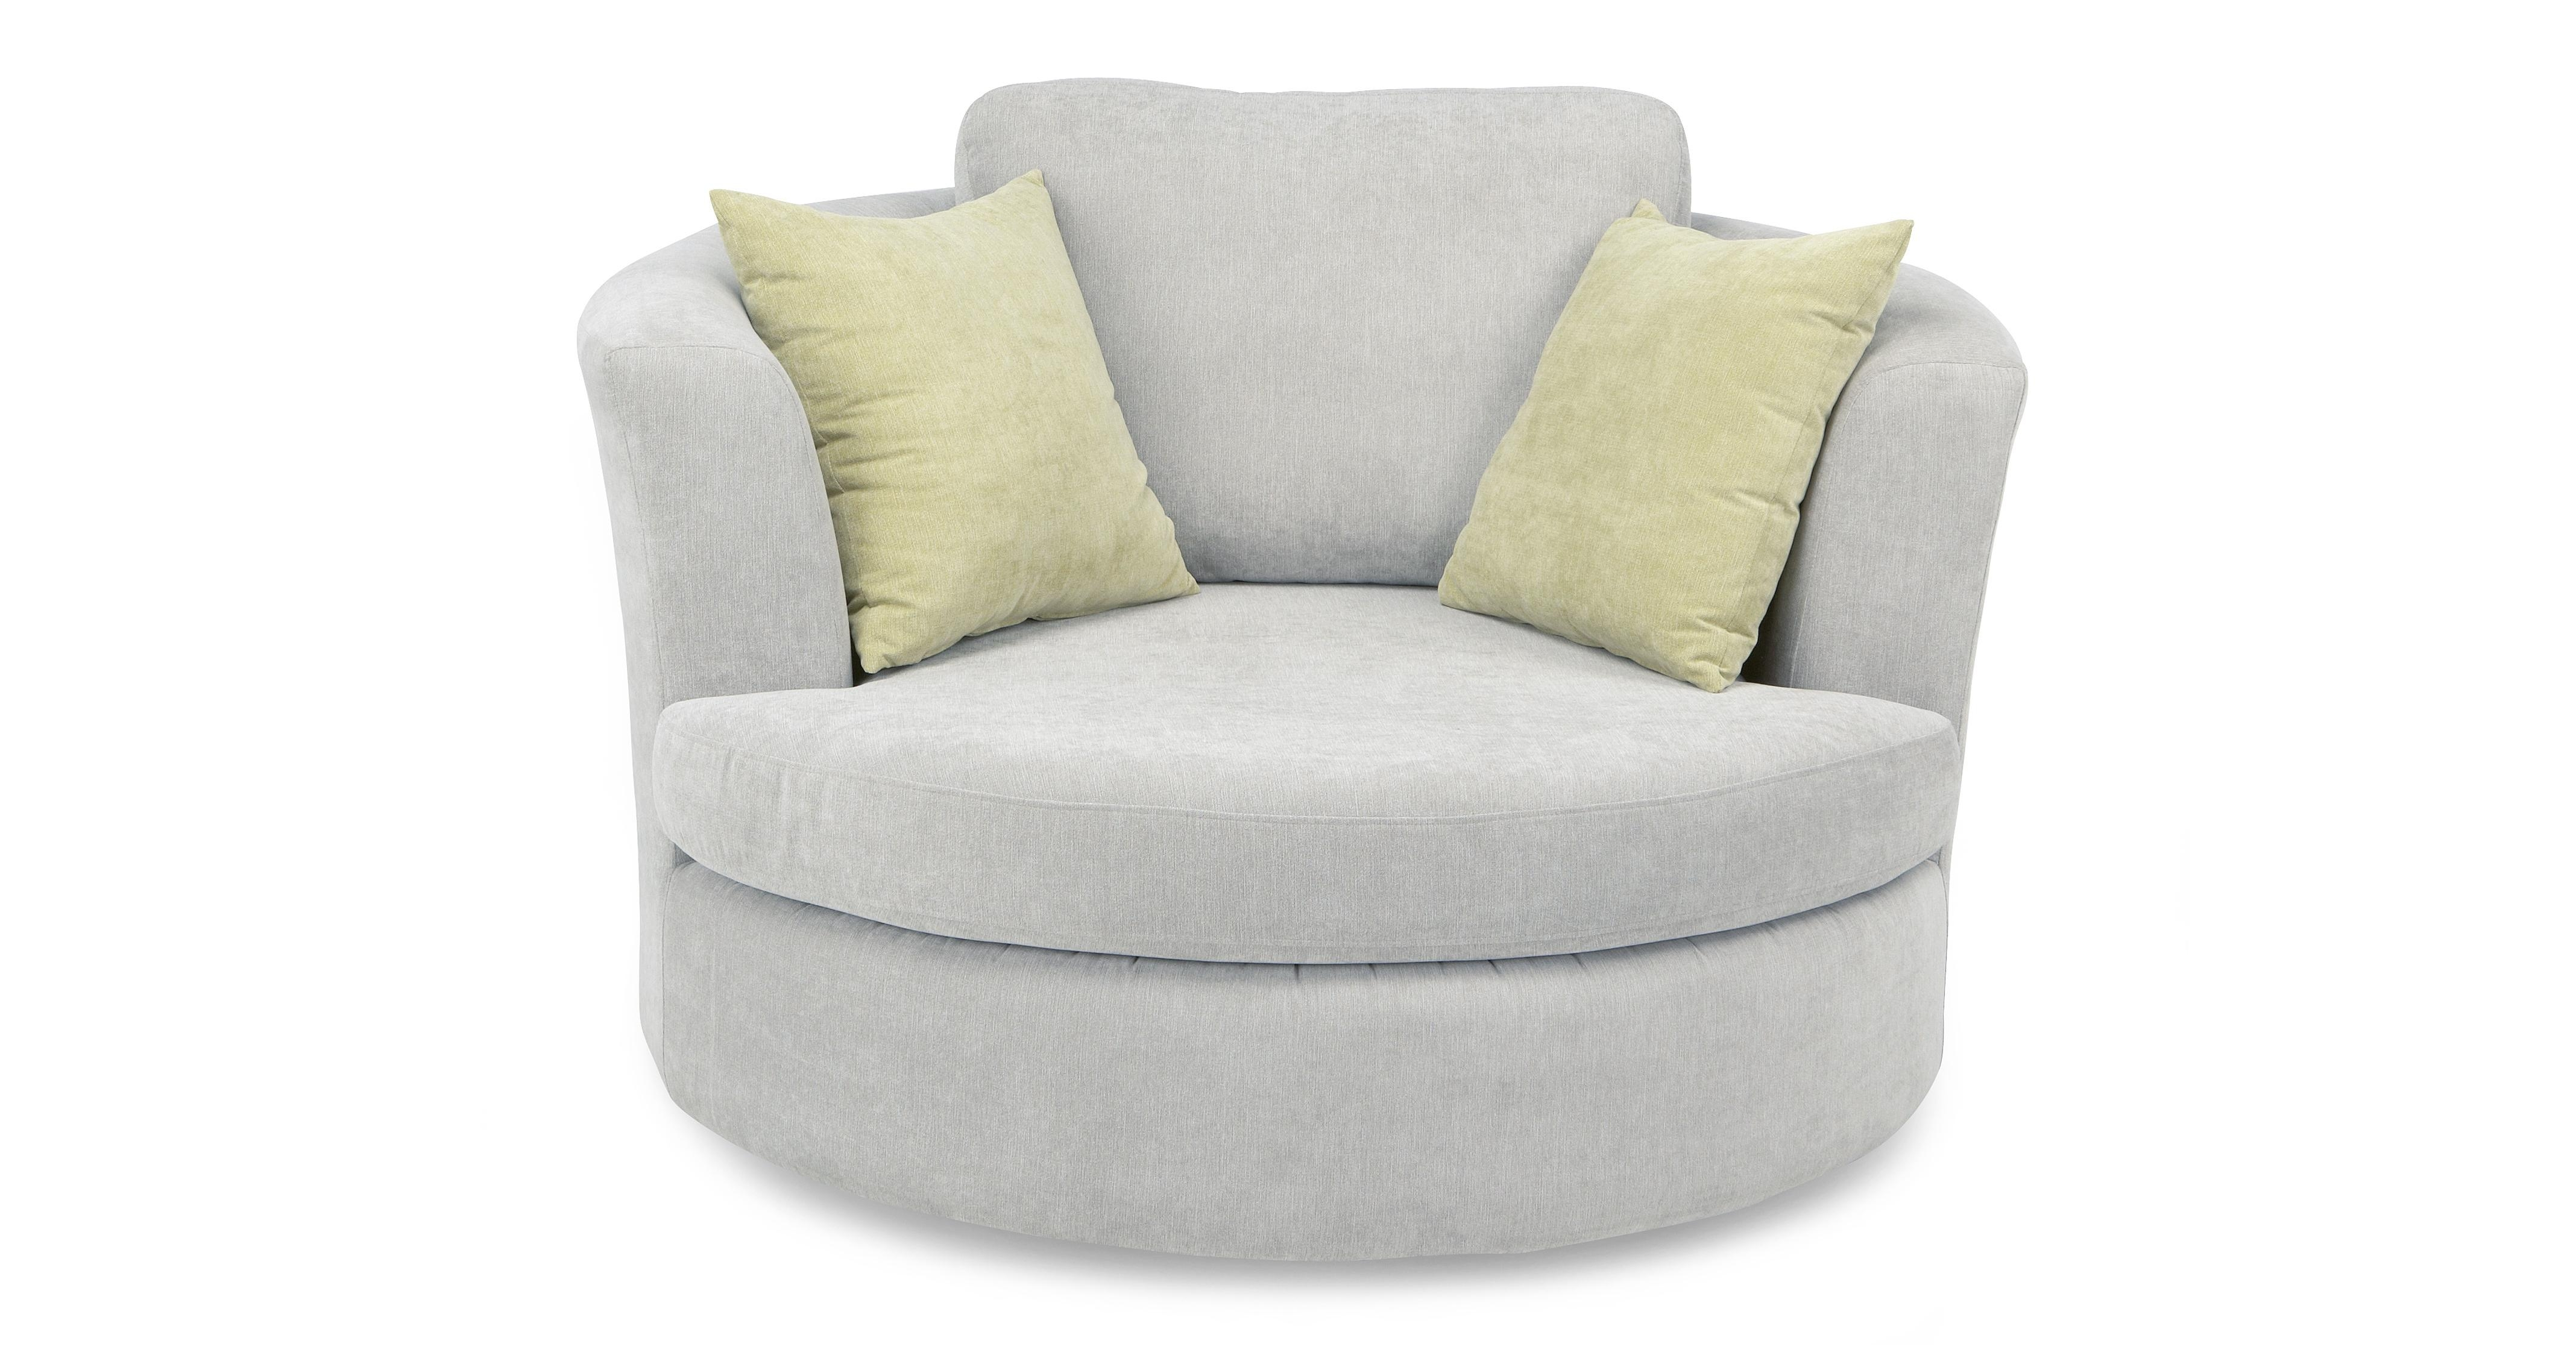 Sofas Center 41 Formidable Swivel Sofa Chair Picture Concept For Round Swivel Sofa Chairs (Image 10 of 15)